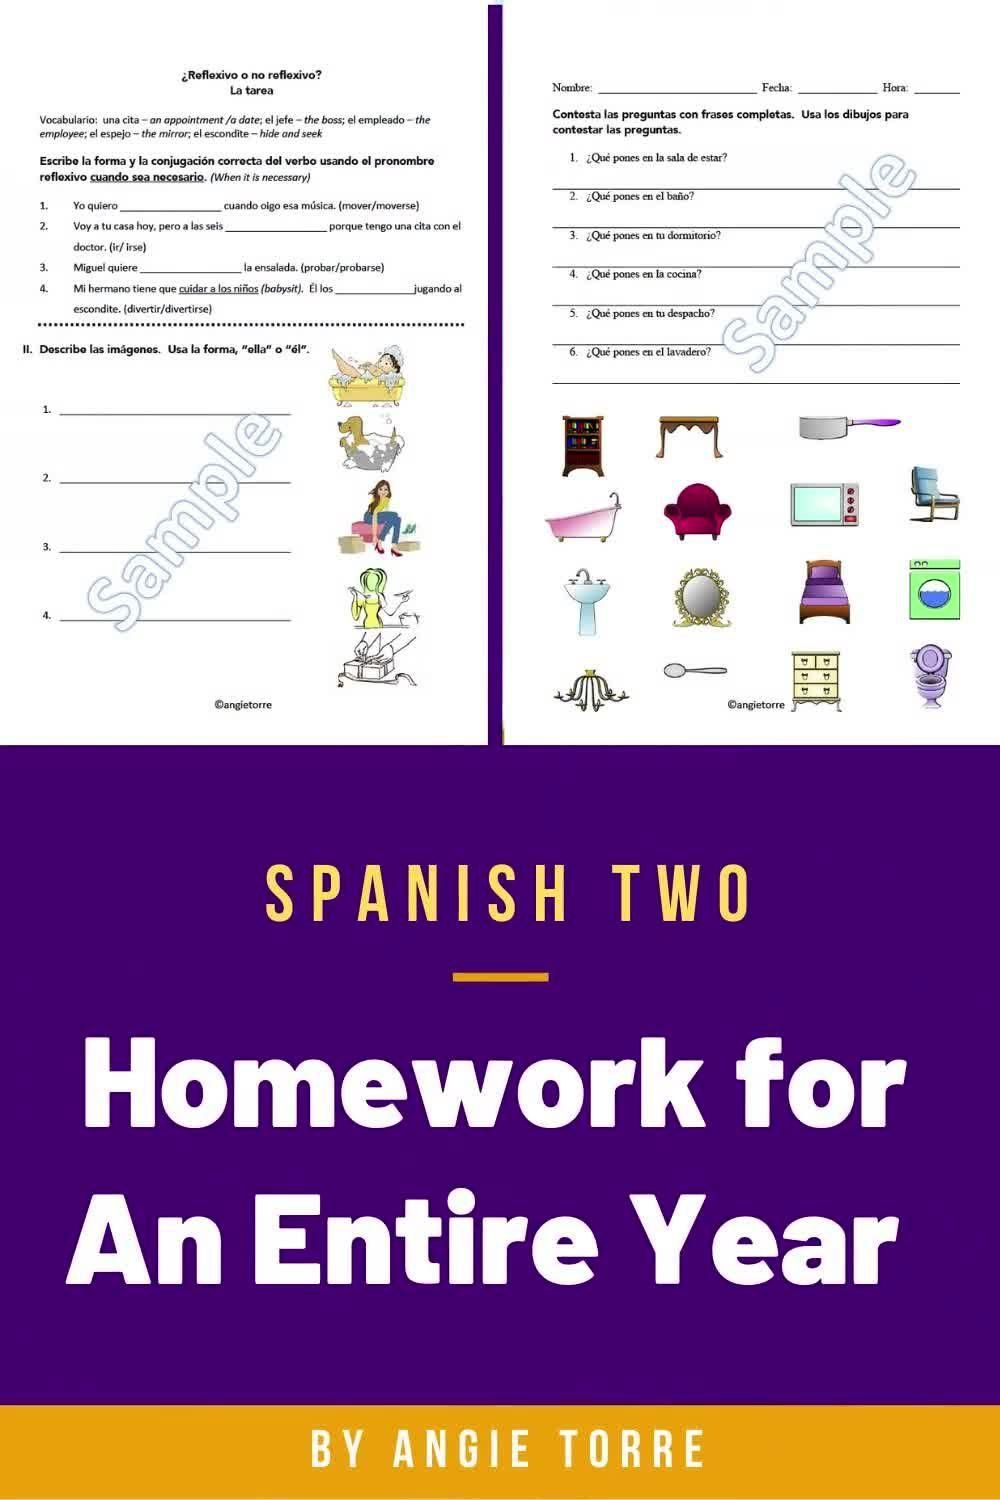 Spanish Two Homework For An Entire Year Best Powerpoints Video Video In 2021 Language Resources Spanish Resources Cloze Activity [ 1500 x 1000 Pixel ]